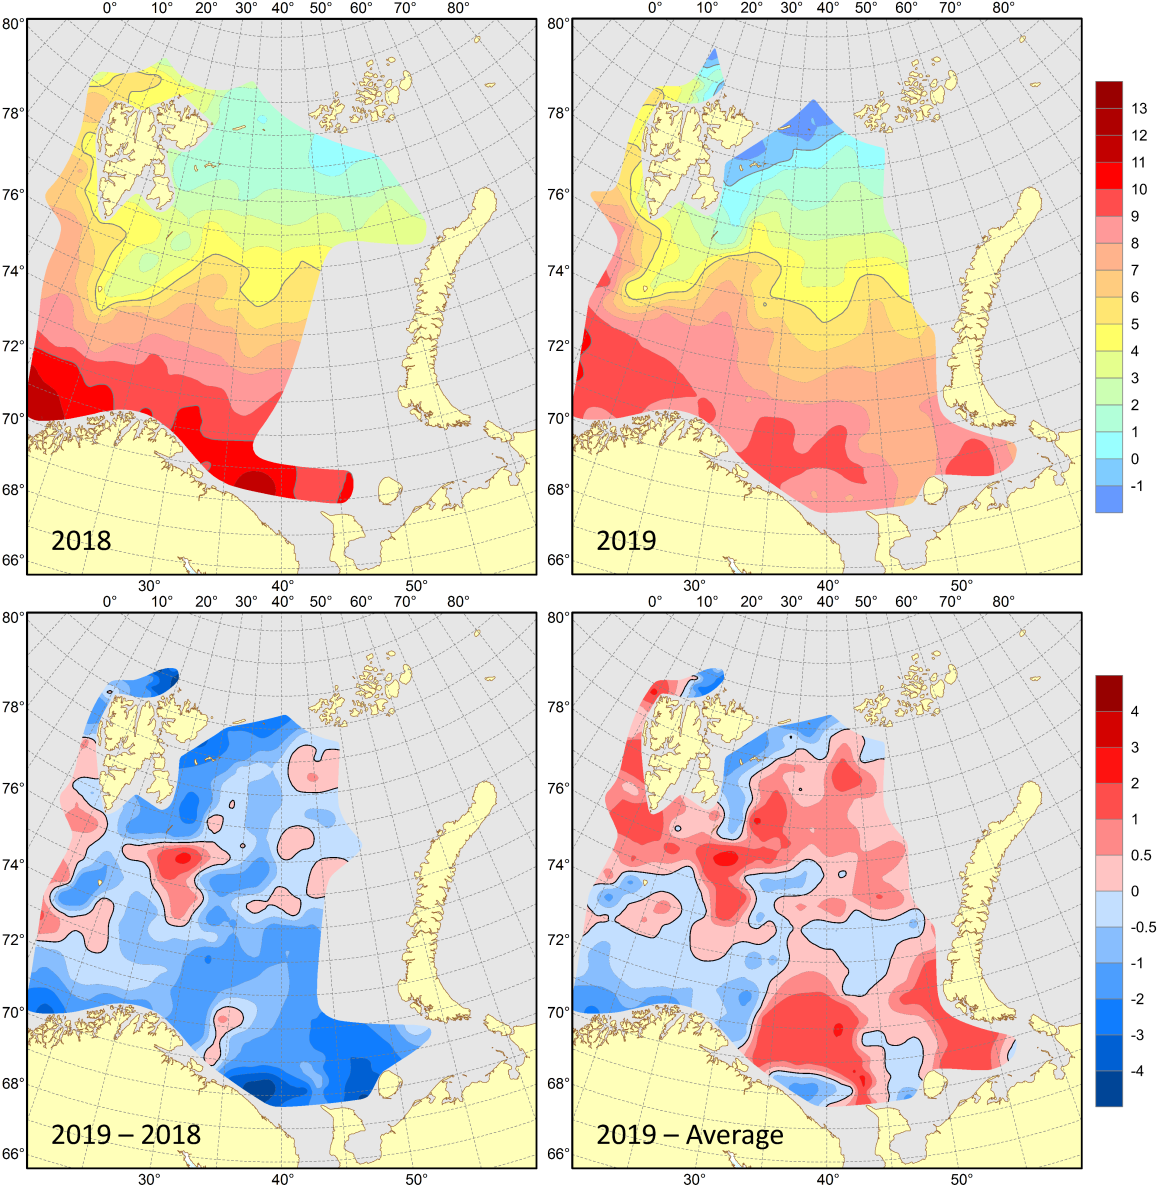 Figure 3.1.8. Surface temperatures (°C) in August–September 2018 (upper left) and 2019 (upper right), their differences between 2019 and 2018 (lower left, °C) and anomalies in August–September 2019 (lower right, °C).=